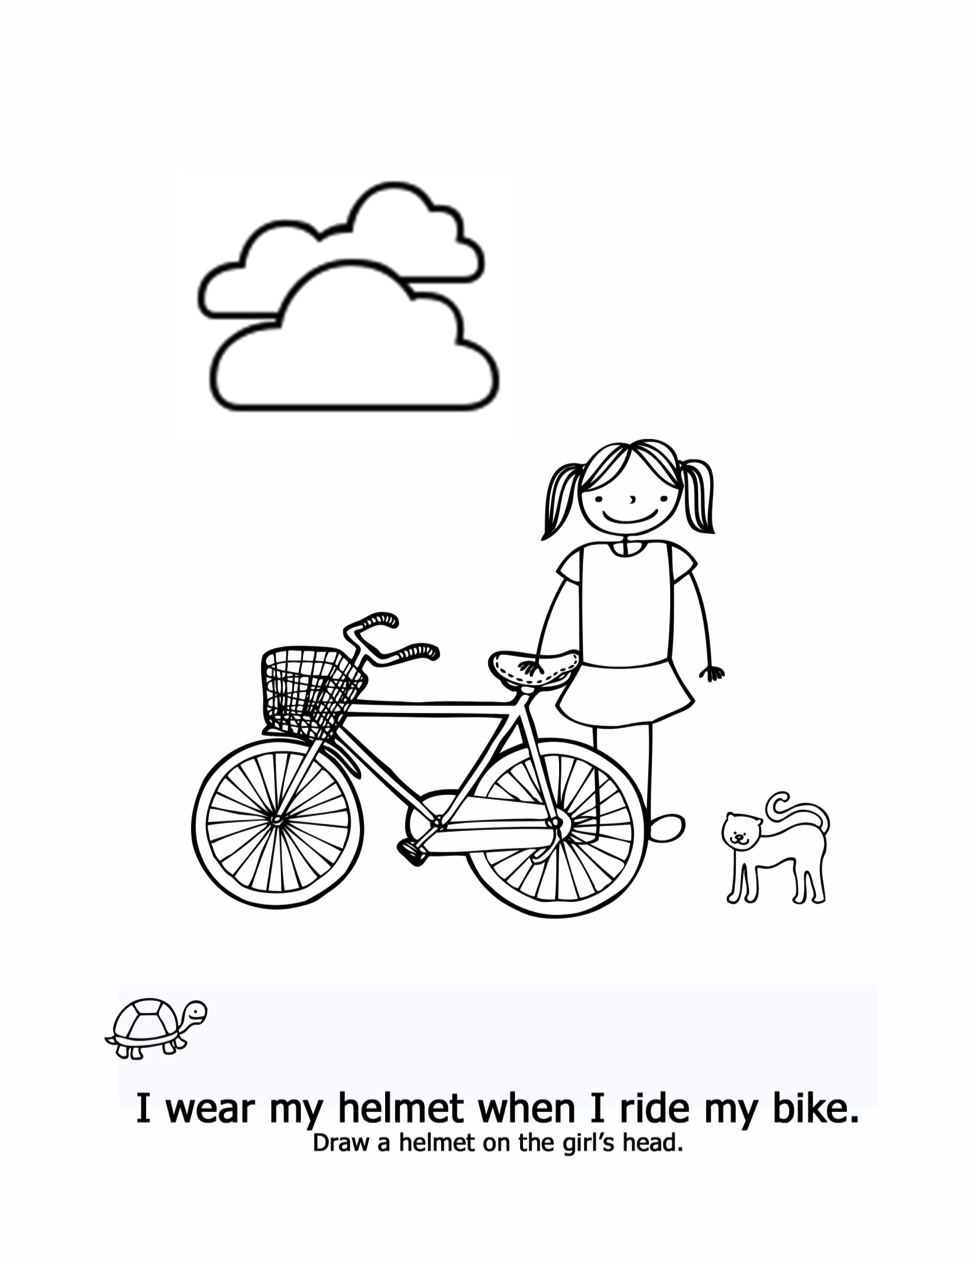 Bike safety coloring page - I Am Safe by Kimberly Rae